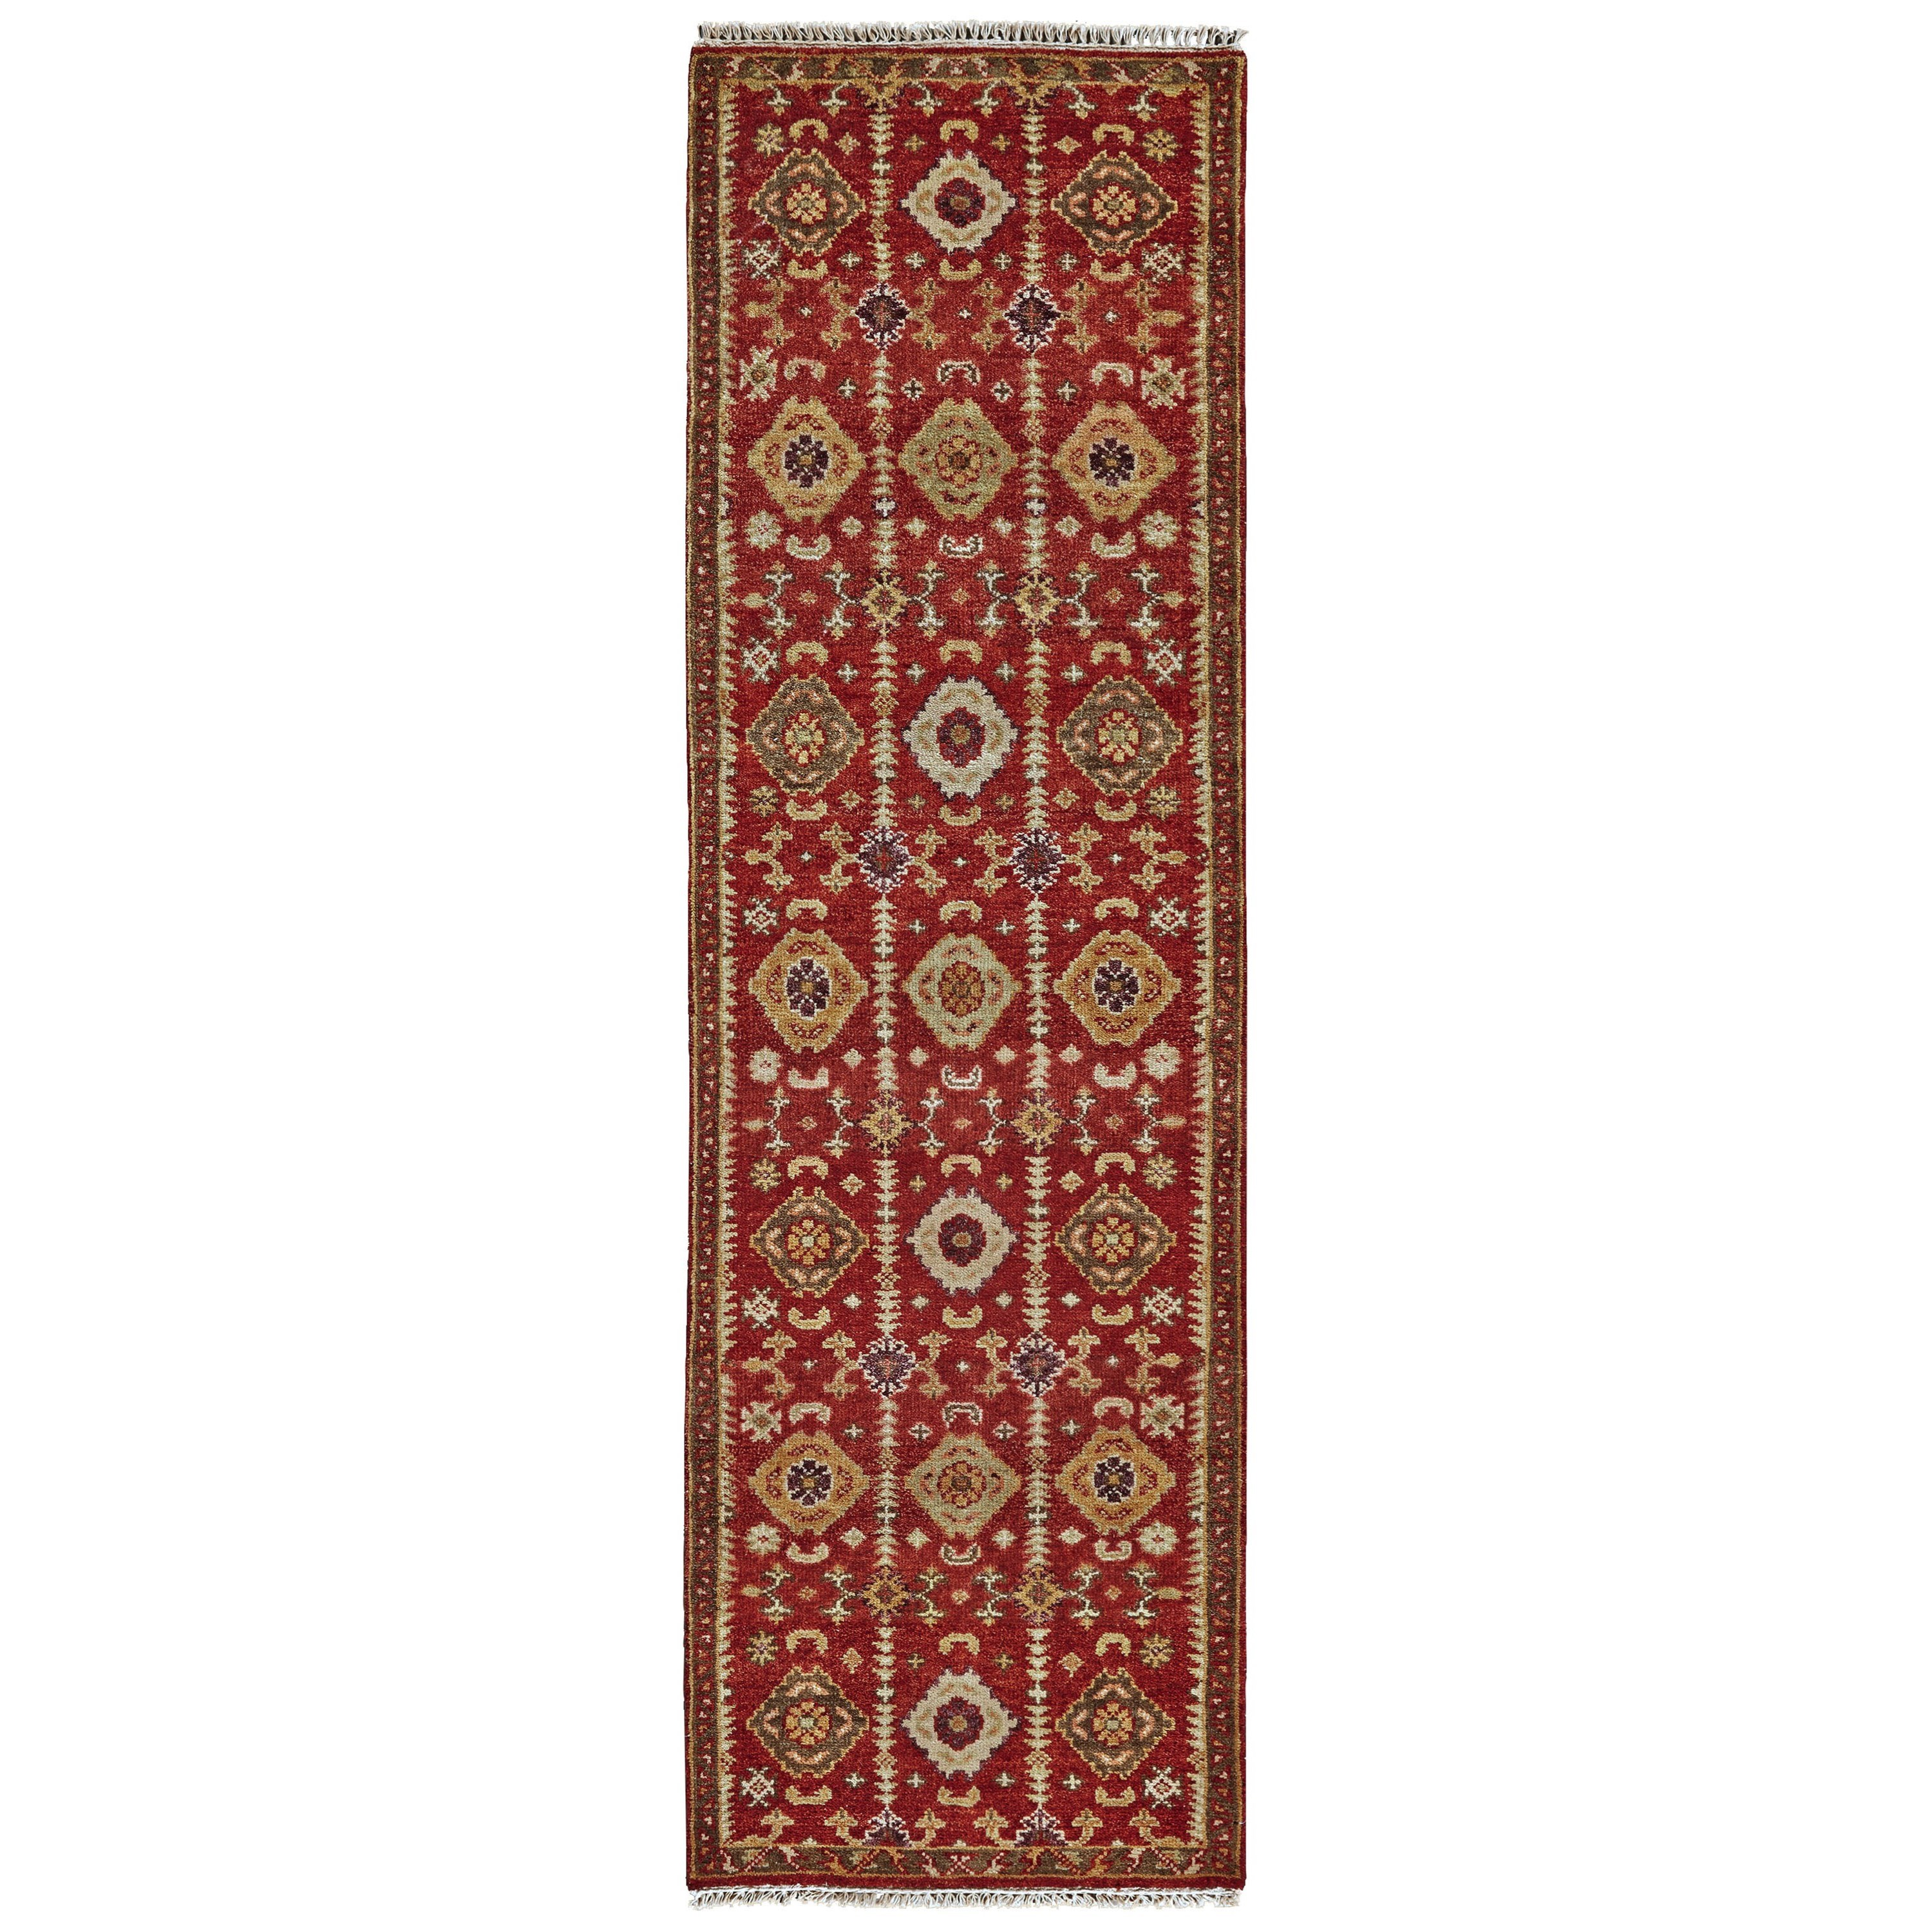 "Ashi Red 2'-6"" x 8' Runner Rug by Feizy Rugs at Sprintz Furniture"